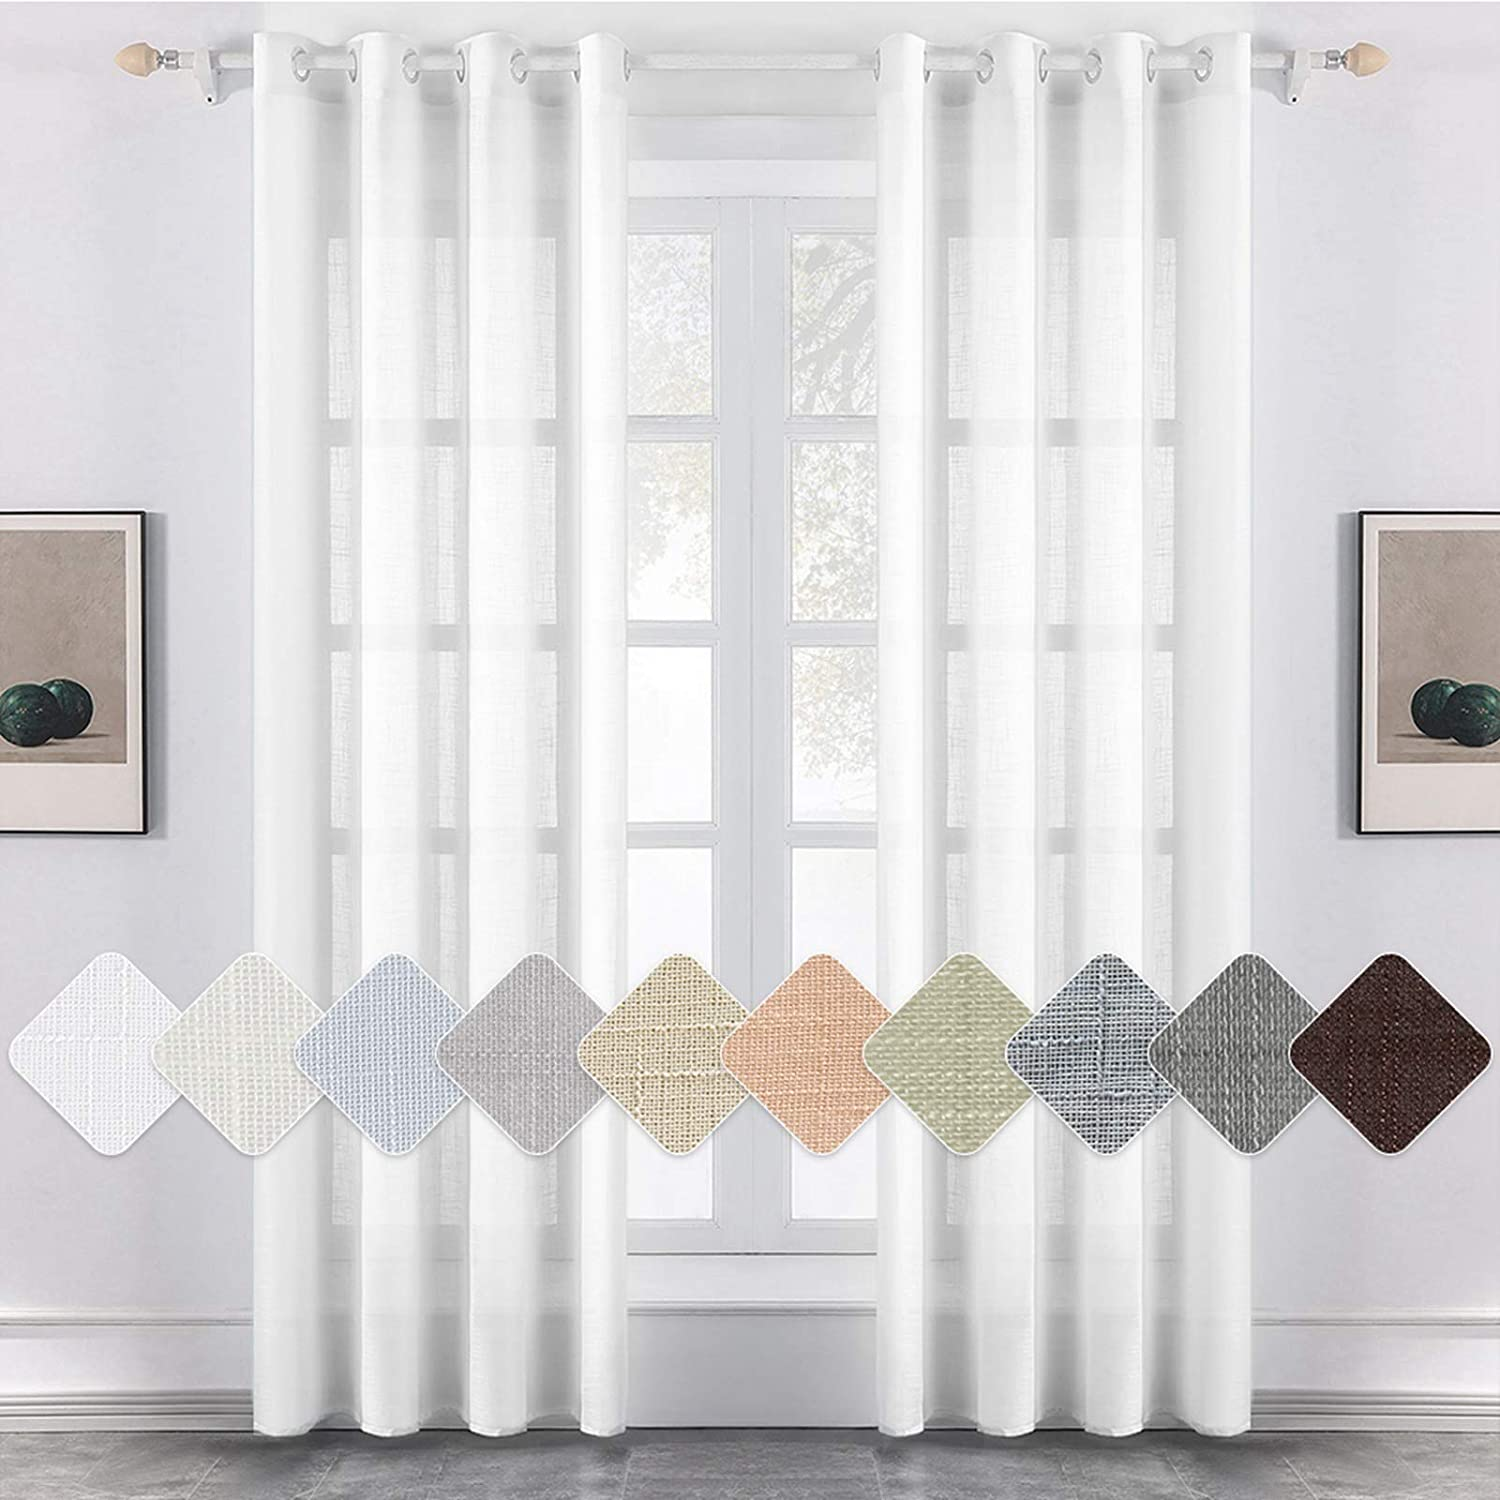 """MIULEE 2 Panels Voile Curtains Sheer Cross Linen-like Solid Color Contemporary Decorative Ring Top Eyelet Panels for Bedroom Livingroom Nursery Room White 55"""" Wx96 L 55""""Wx96""""L White"""